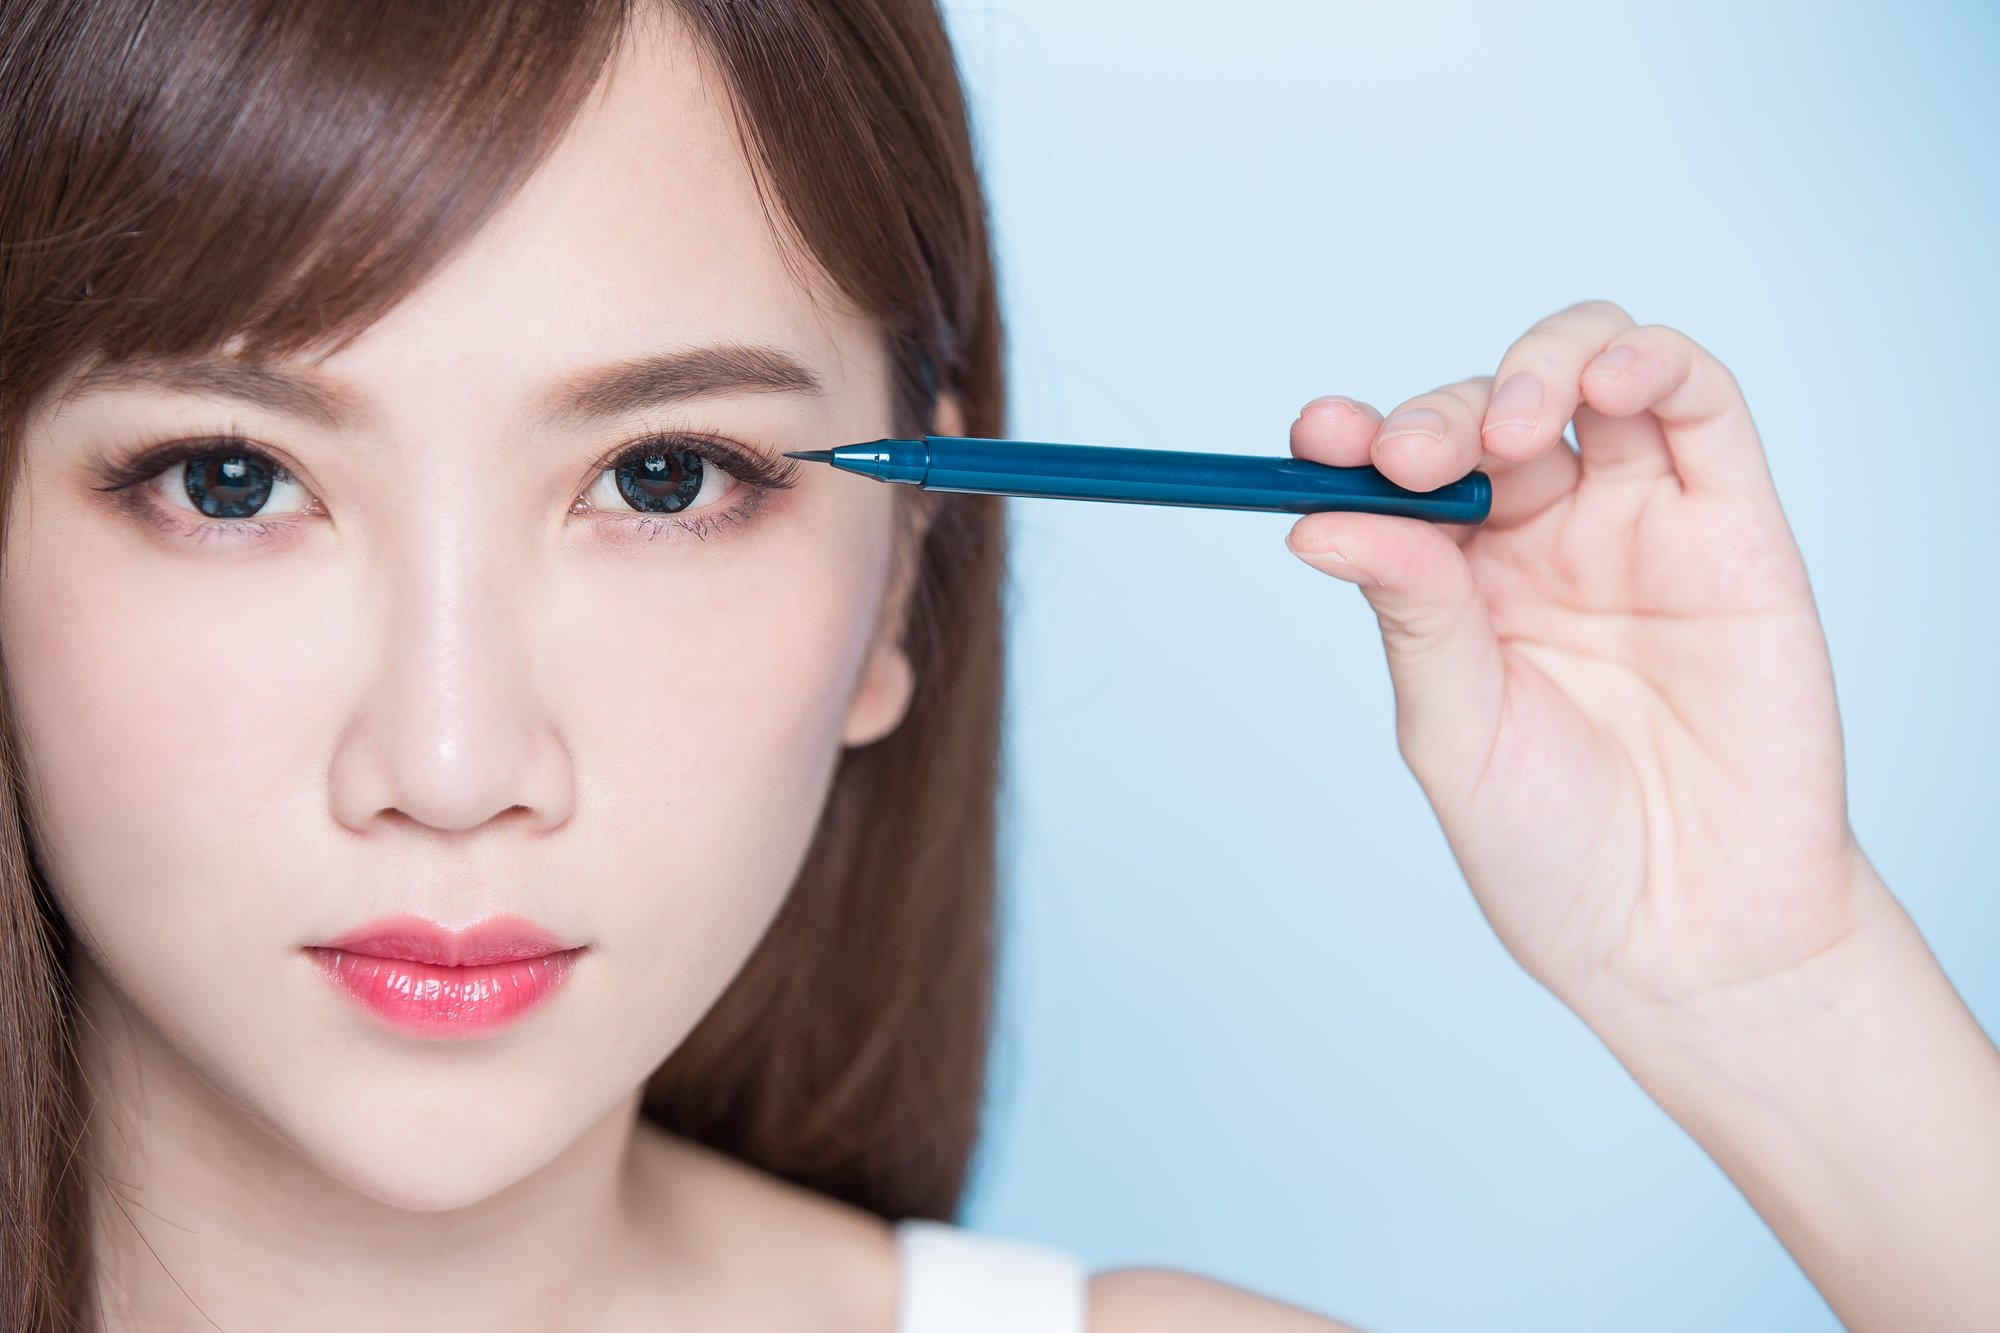 what no eyeliner makeup 1.jpg?resize=300,169 - デカ目メイクで目力アップ